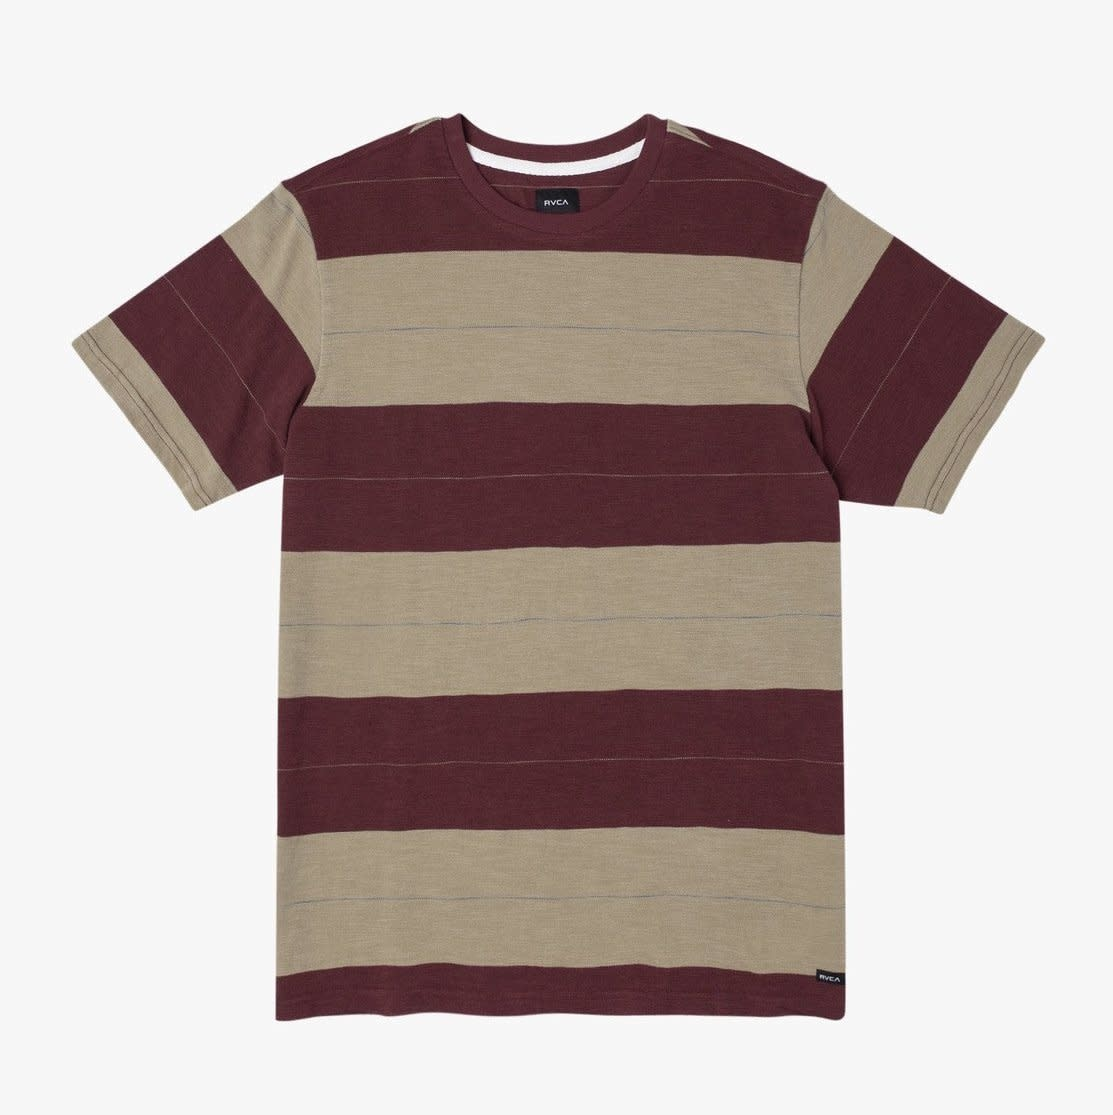 RVCA Rumble Crew Knit Oxblood